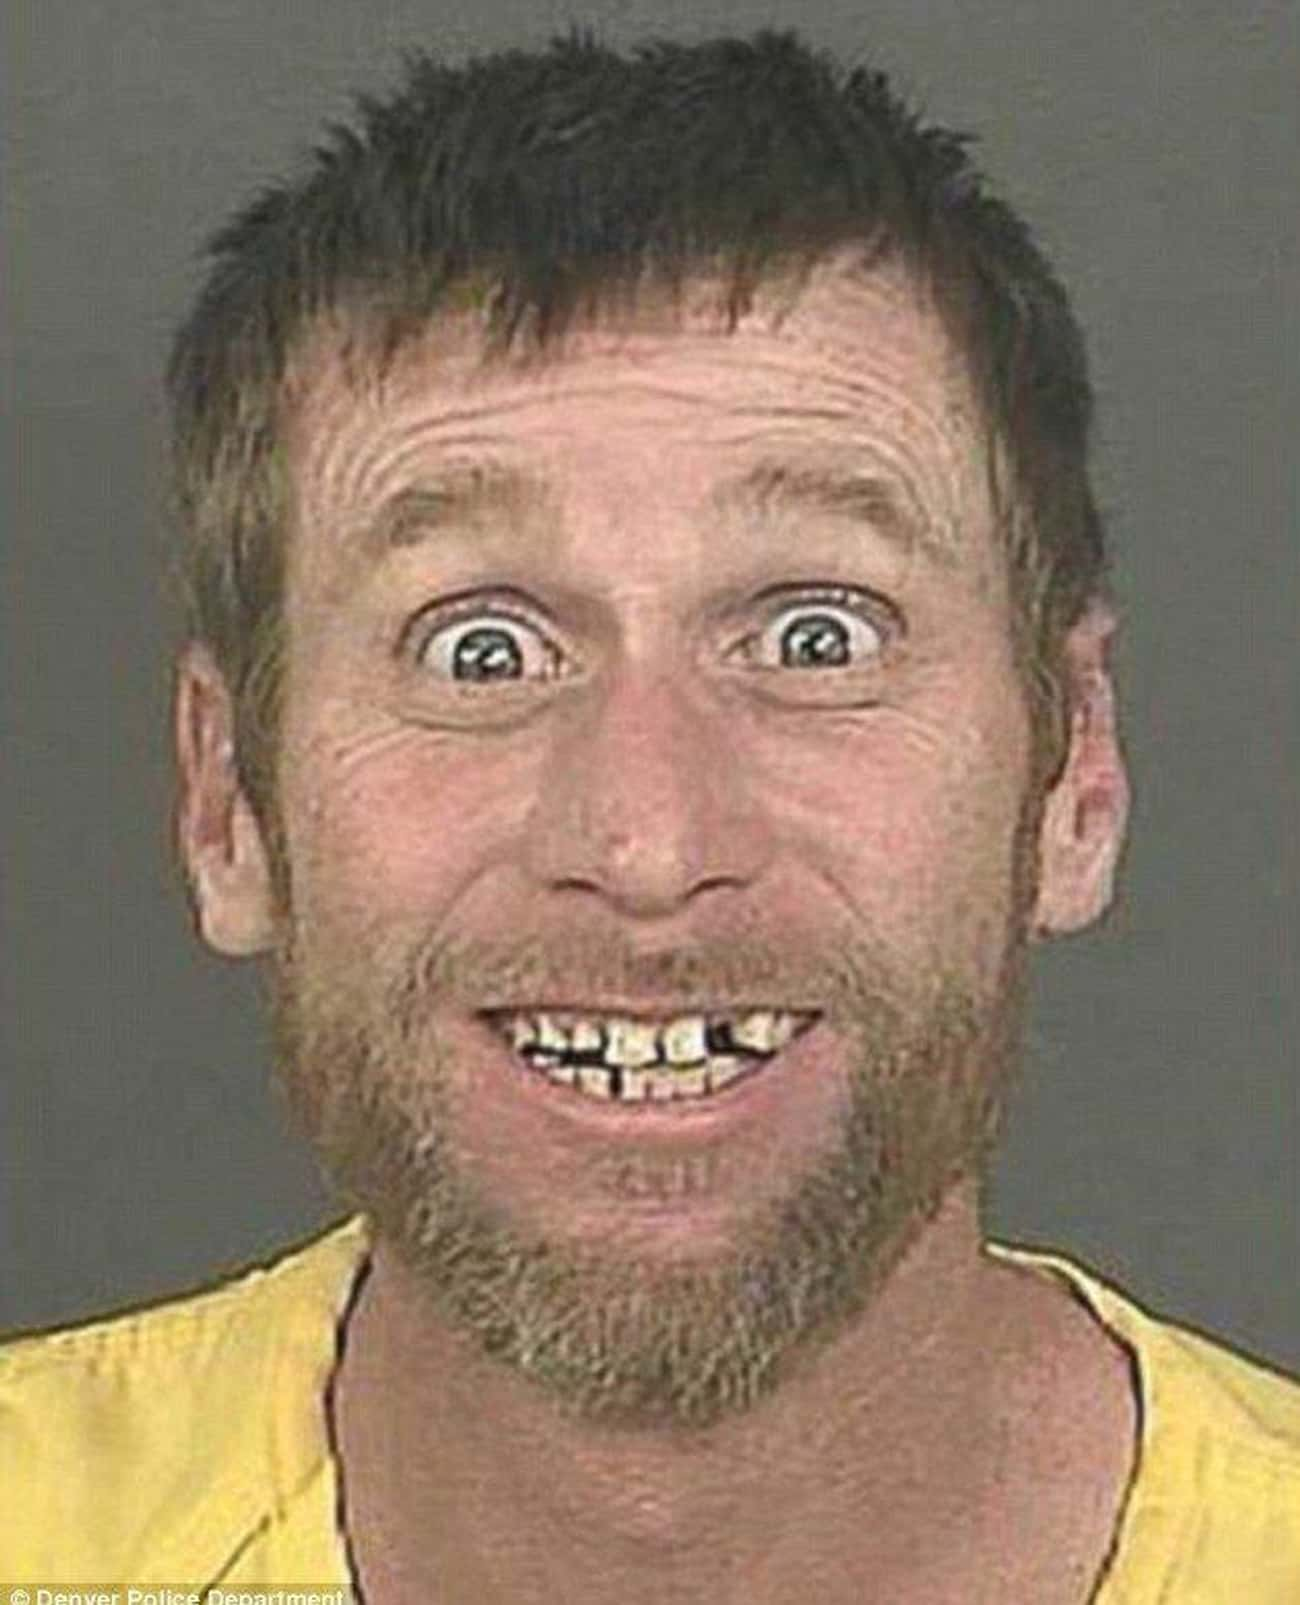 Charged With Perpetuating Ever is listed (or ranked) 2 on the list 26 People Who Are Smiling A Little Too Hard For Their Mugshots